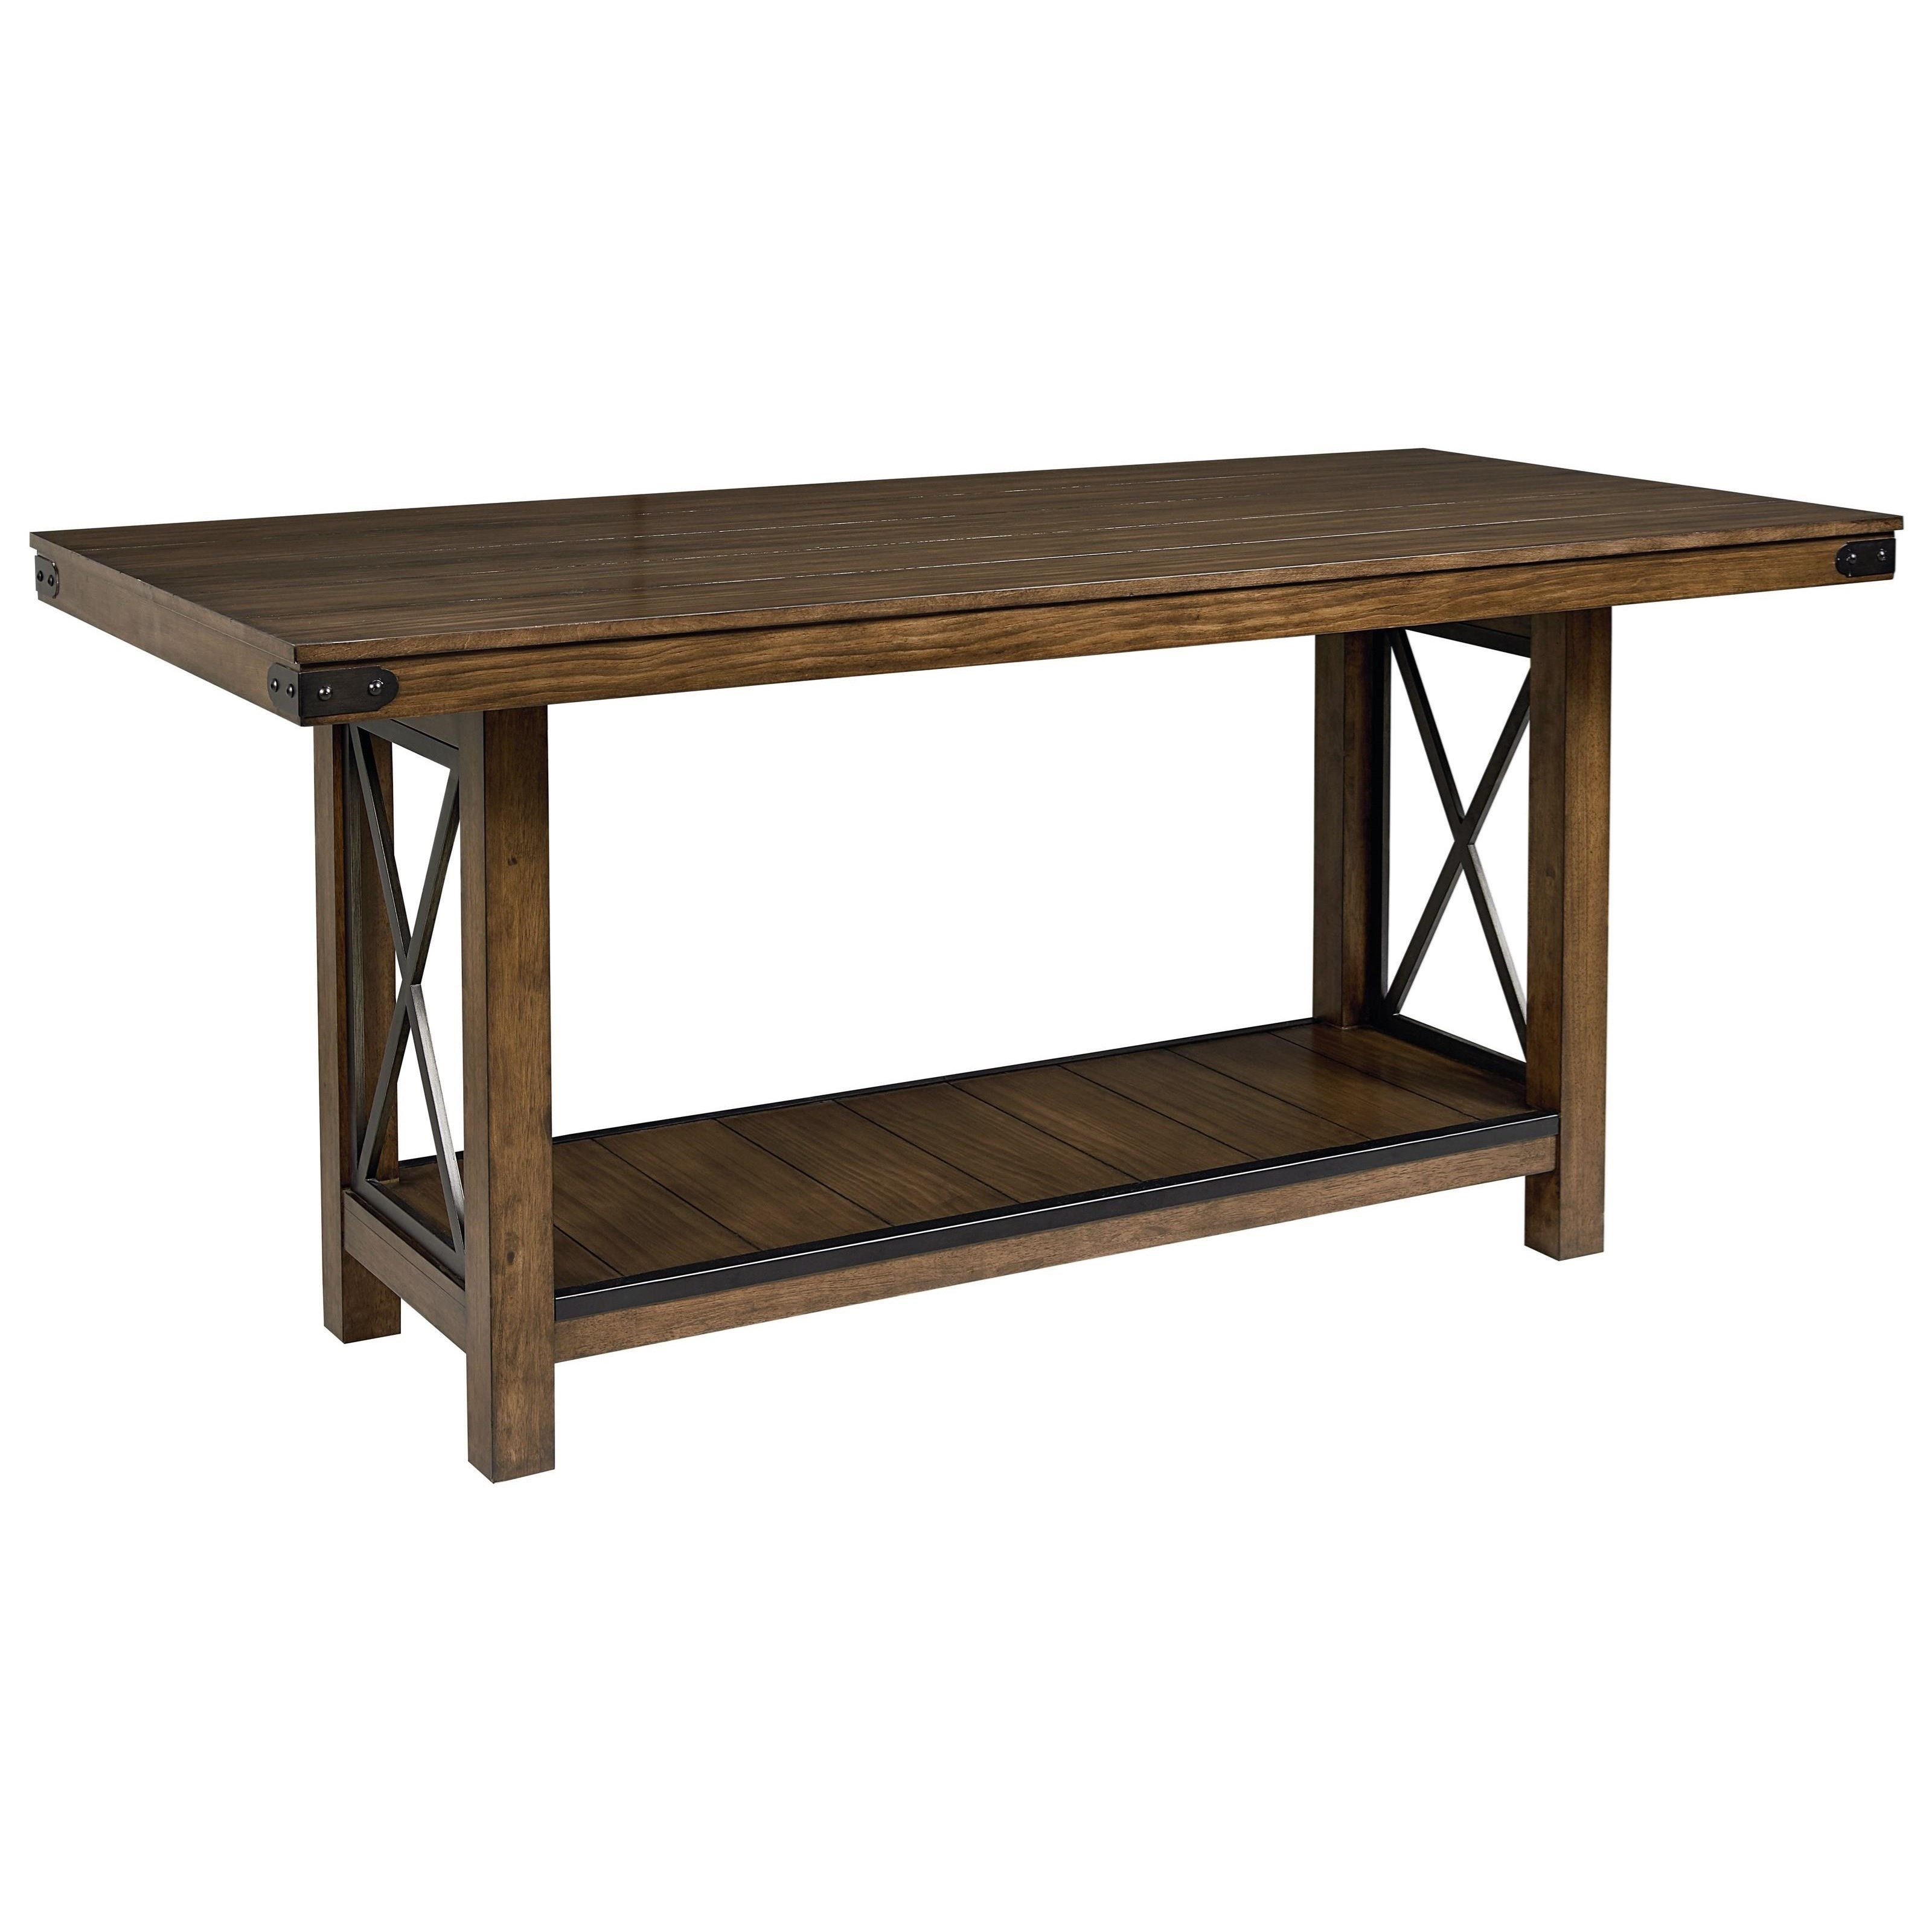 Standard furniture benson counter height table with for Table 6 kitchen and bar canton ohio